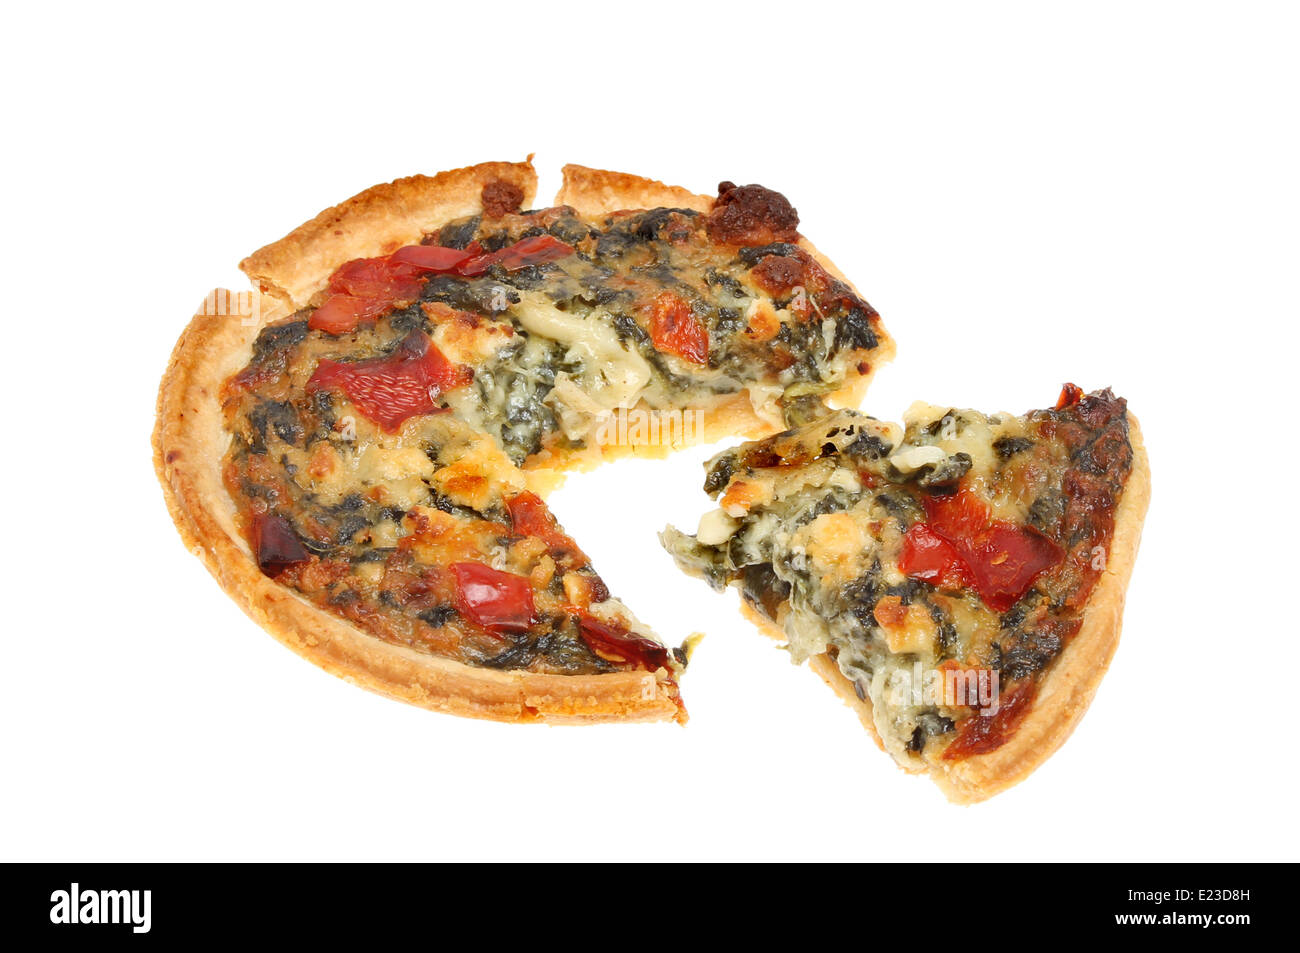 Spinach, feta cheese and tomato savory tart with a slice cut out isolated against white - Stock Image